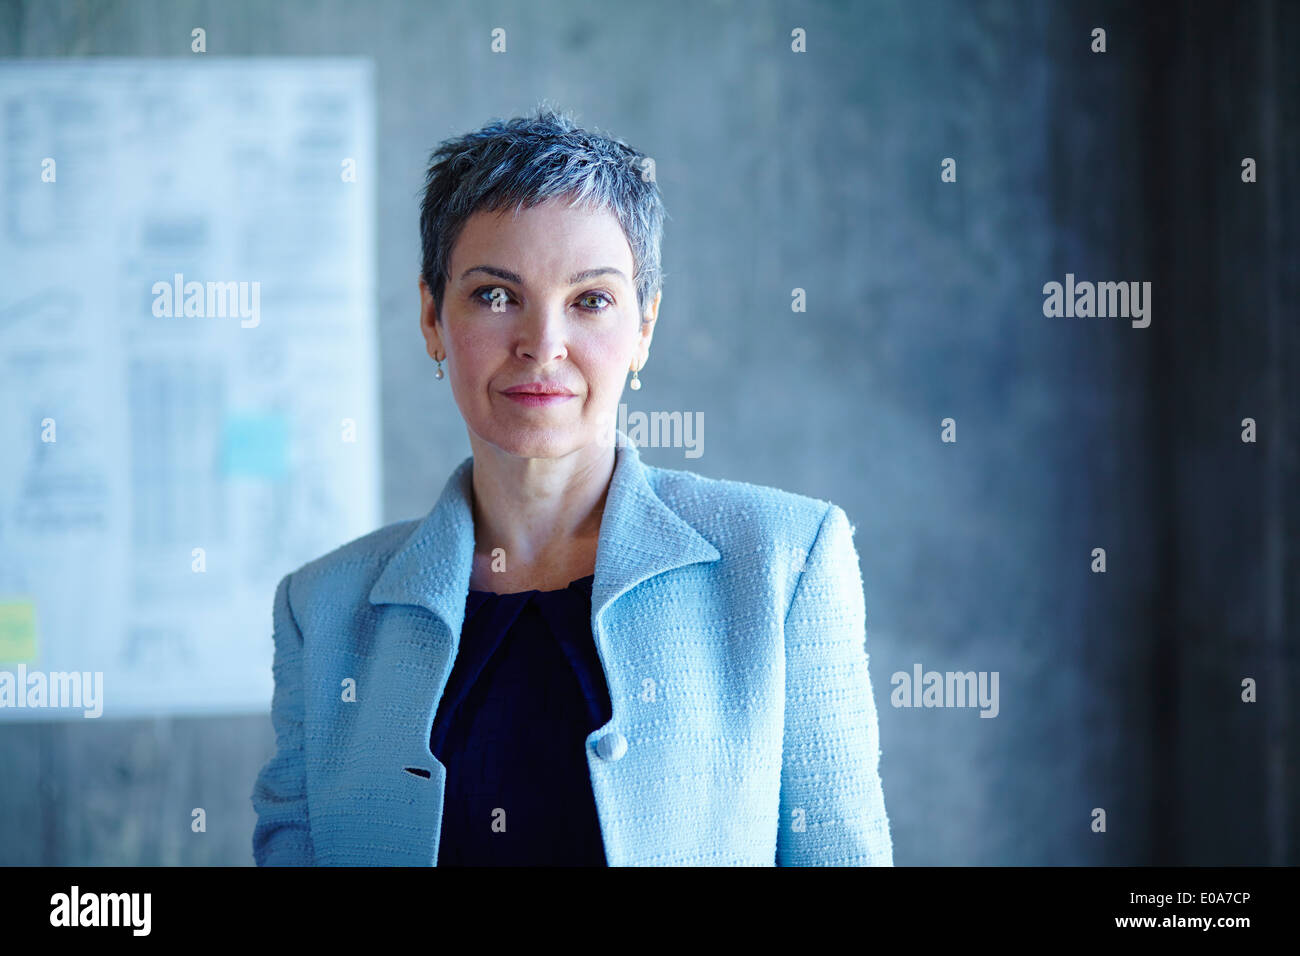 Portrait of determined mature businesswoman - Stock Image